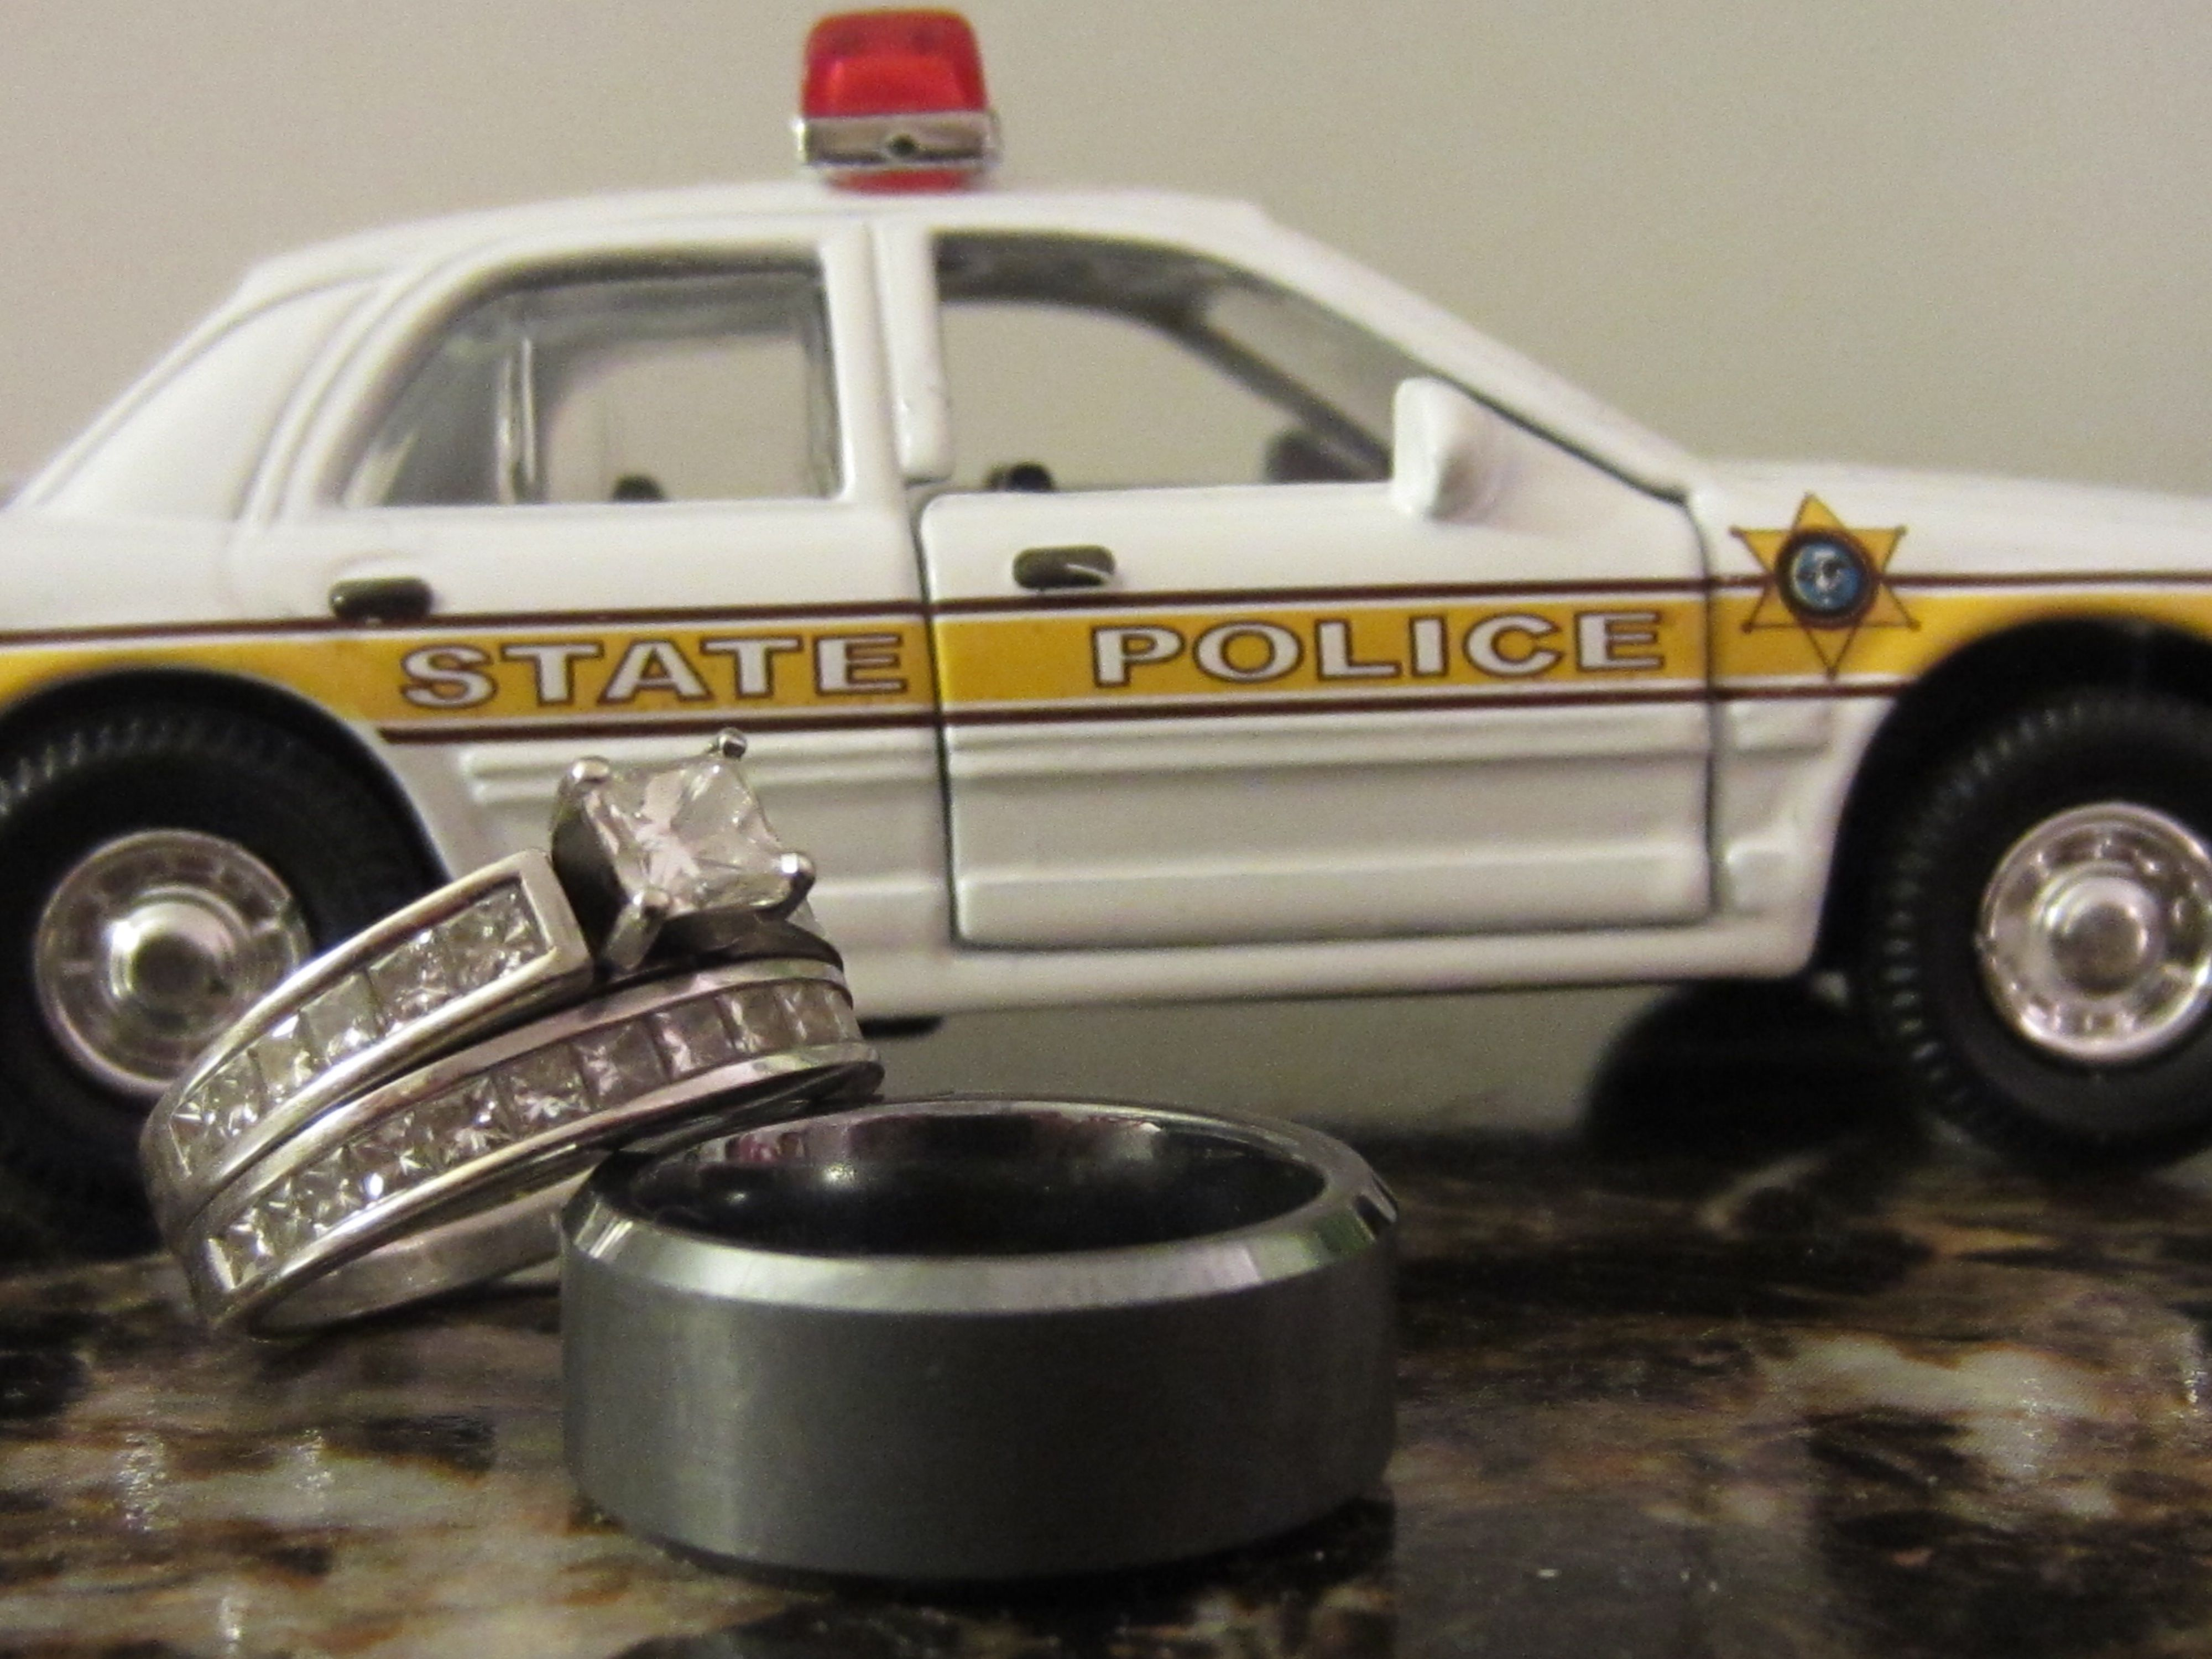 police wedding bands State Police wedding rings